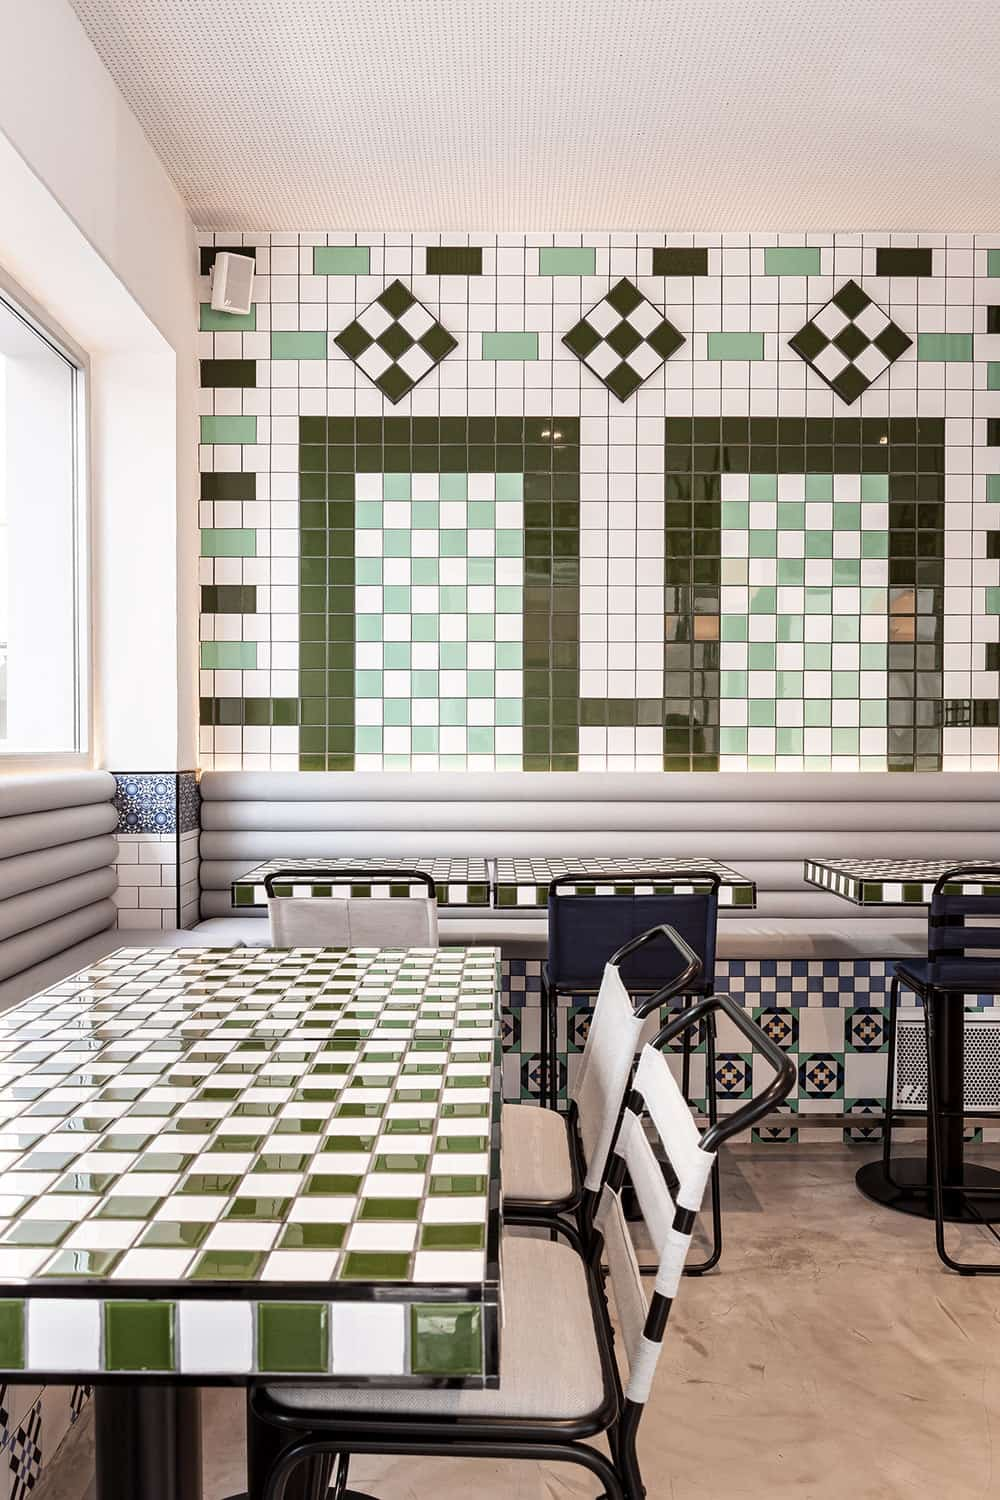 This is a close look at the booth sections of the restaurant with cushioned built-in benches paired with checkered tables.